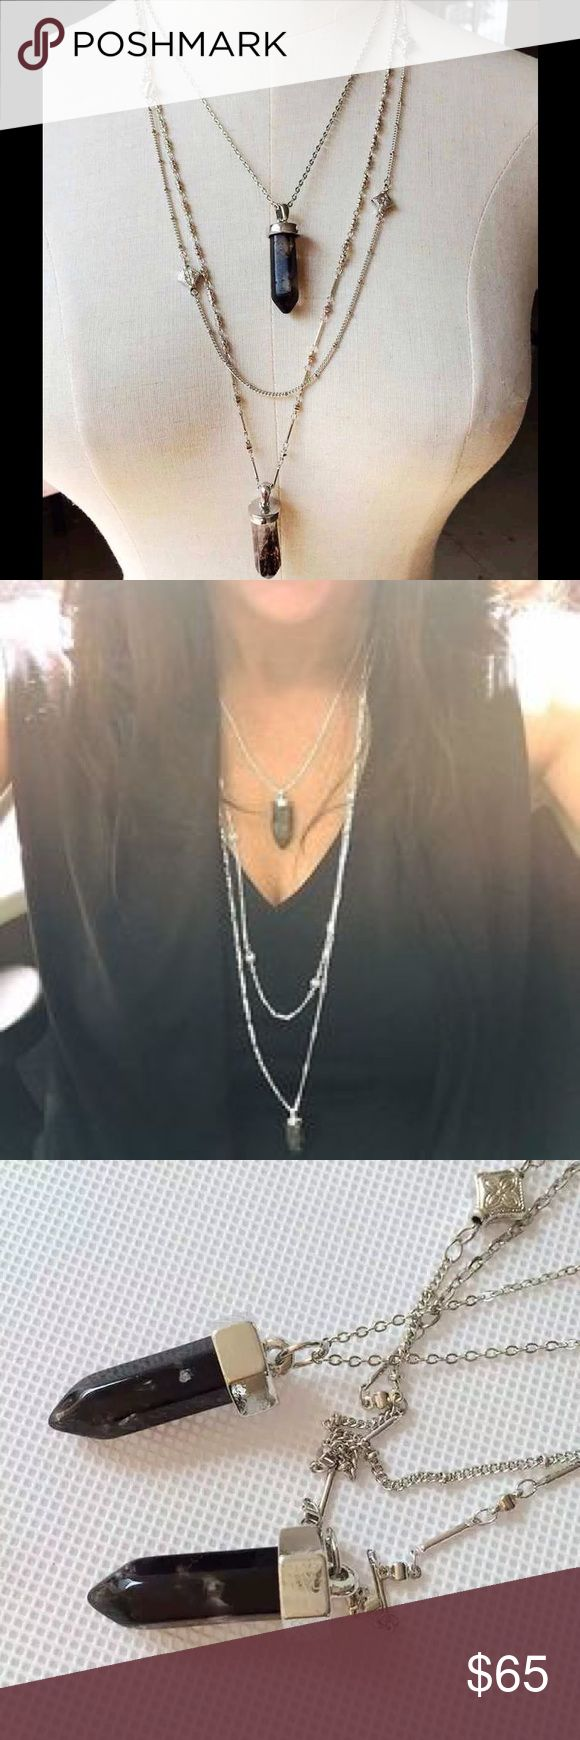 Stella and Dot Aria Black double crystal necklace Sterling silver chain with two black crystal pendants layered necklace legit Stella and Dot comes with dust bag has the Stella and Dot Circle logo tag next to the clasp. Can be worn in several different ways and with anything! I have a pair of large silver Crescent Stella and Dot earrings that would go lovely with this. Normally retails for $98 used, this is brand-new, never worn. Also available in gold and clear crystals. Stella & Dot…